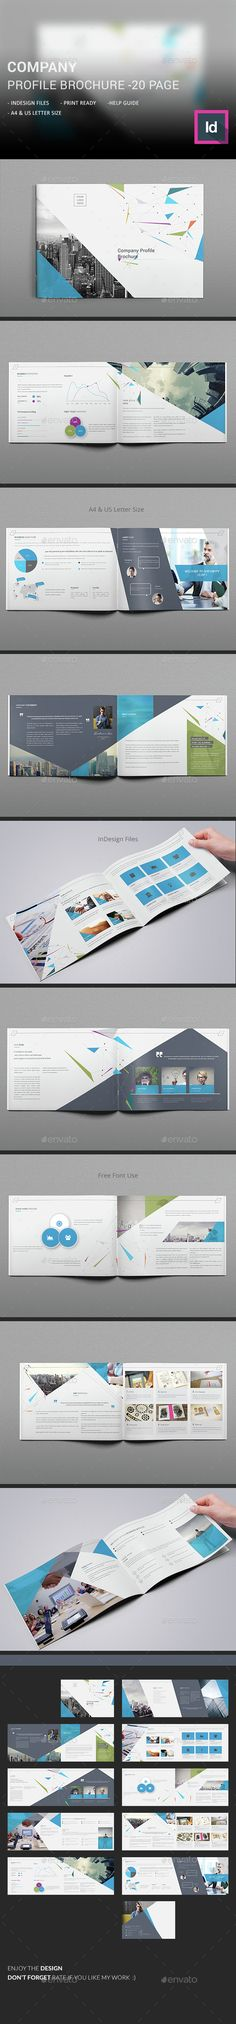 Corporate Profile, Corporate Brochure Design, Layout Design, Print Design, Graphic Design, Company Profile Design, Indesign Brochure Templates, Design Commercial, Catalog Design